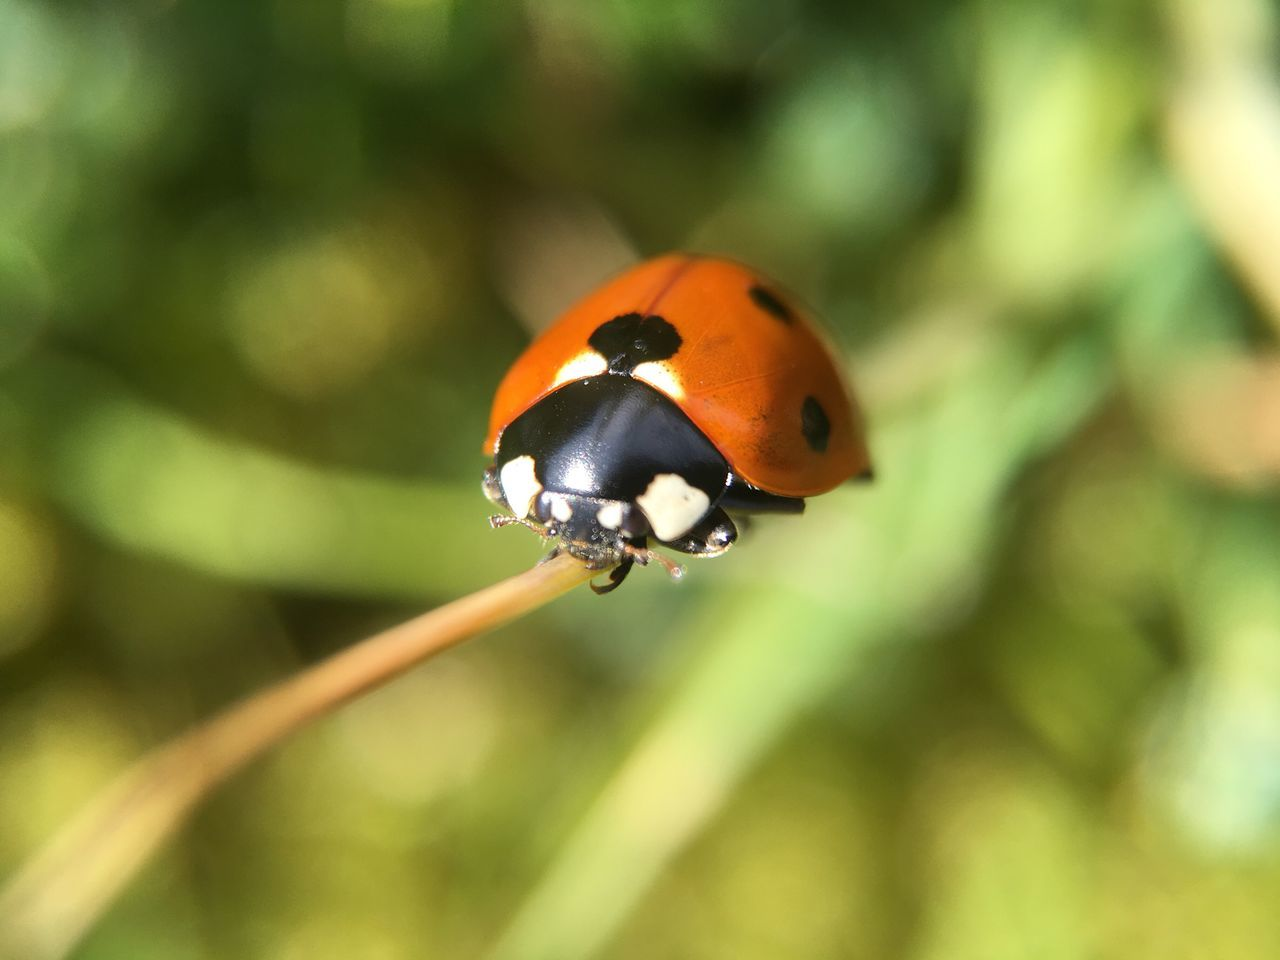 Insect Ladybug Close-up Olloclip_macro No Filter Grass Grassland Green Color Macro Photography Macro Insects  Insect Photography Blade Of Grass Climbing Ladybug🐞 Ladybugmacro Ladybugs Photography